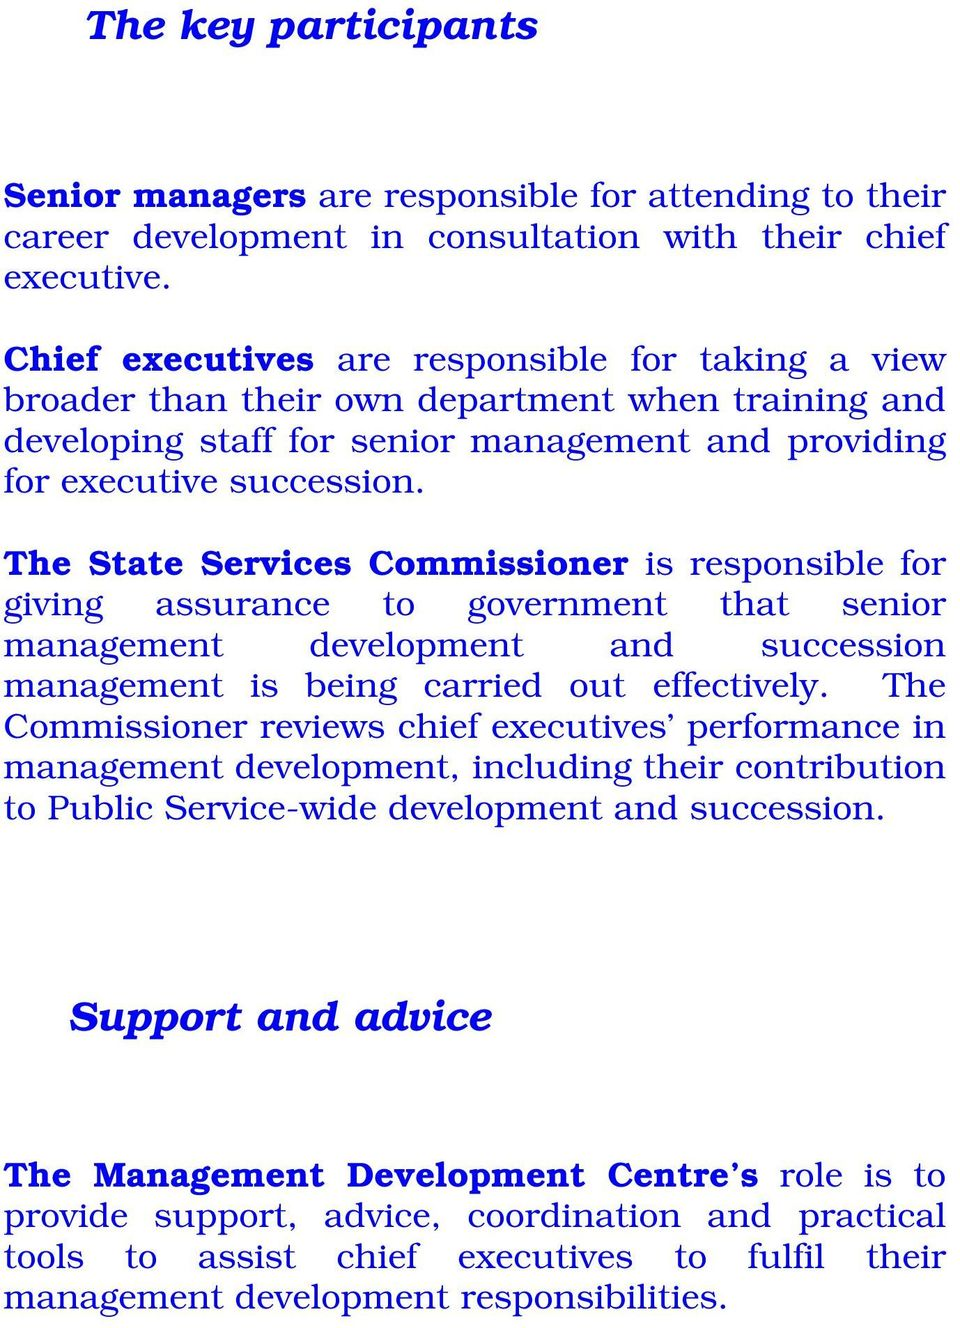 The State Services Commissioner is responsible for giving assurance to government that senior management development and succession management is being carried out effectively.